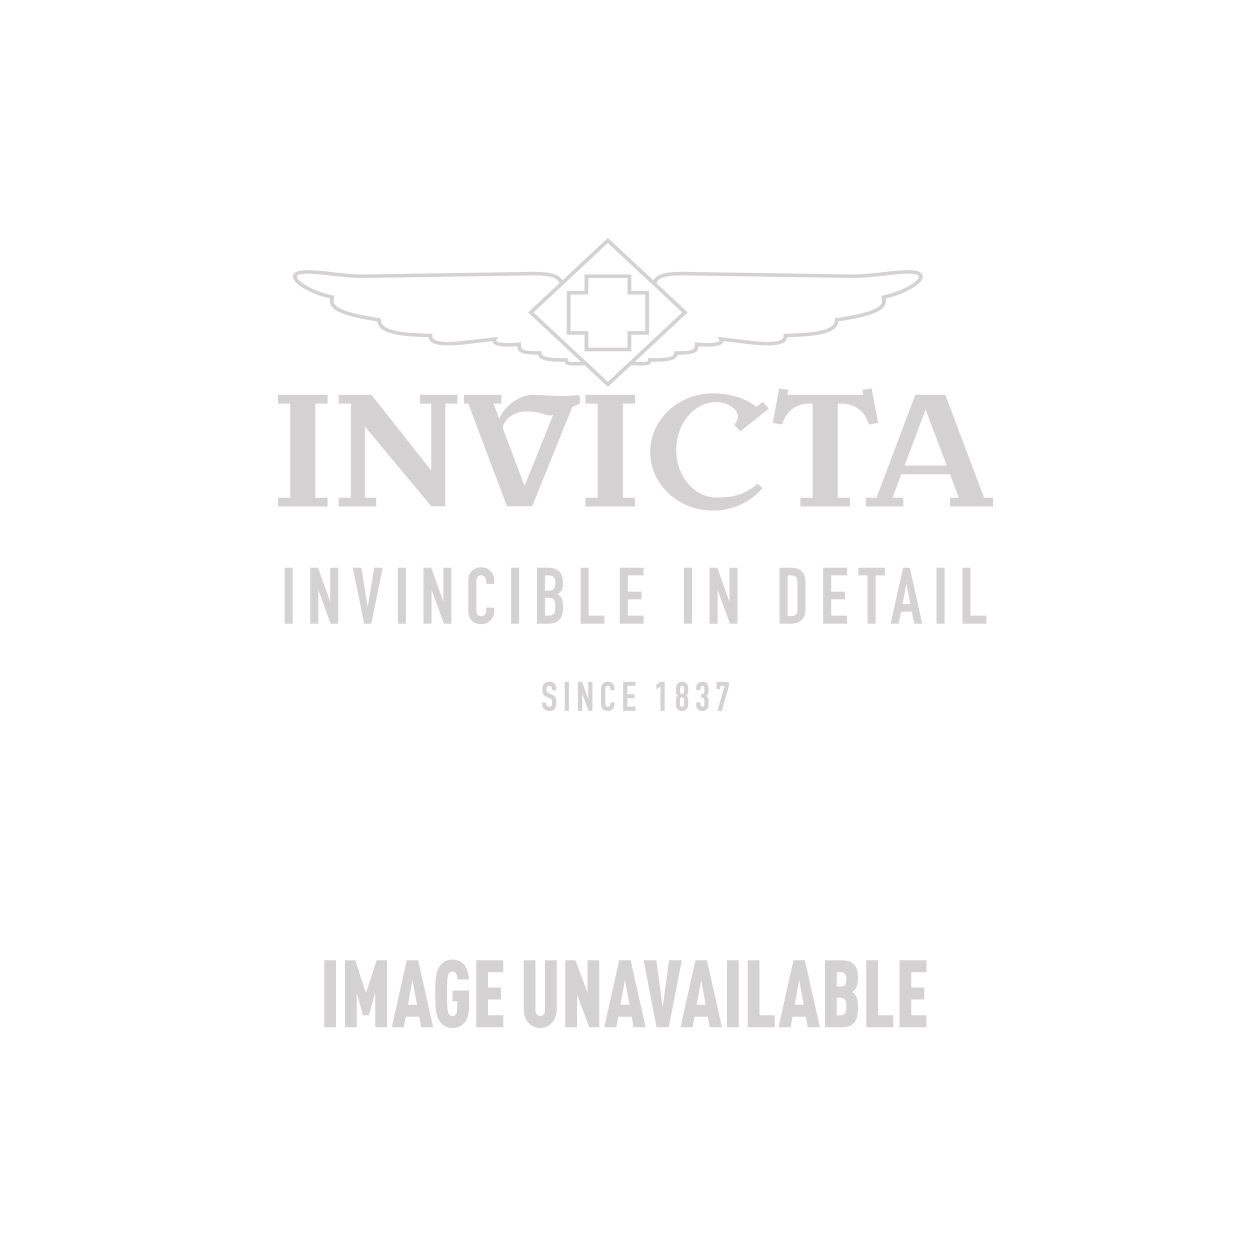 Invicta Specialty Swiss Movement Quartz Watch - Gold case with Brown tone Leather band - Model 11191